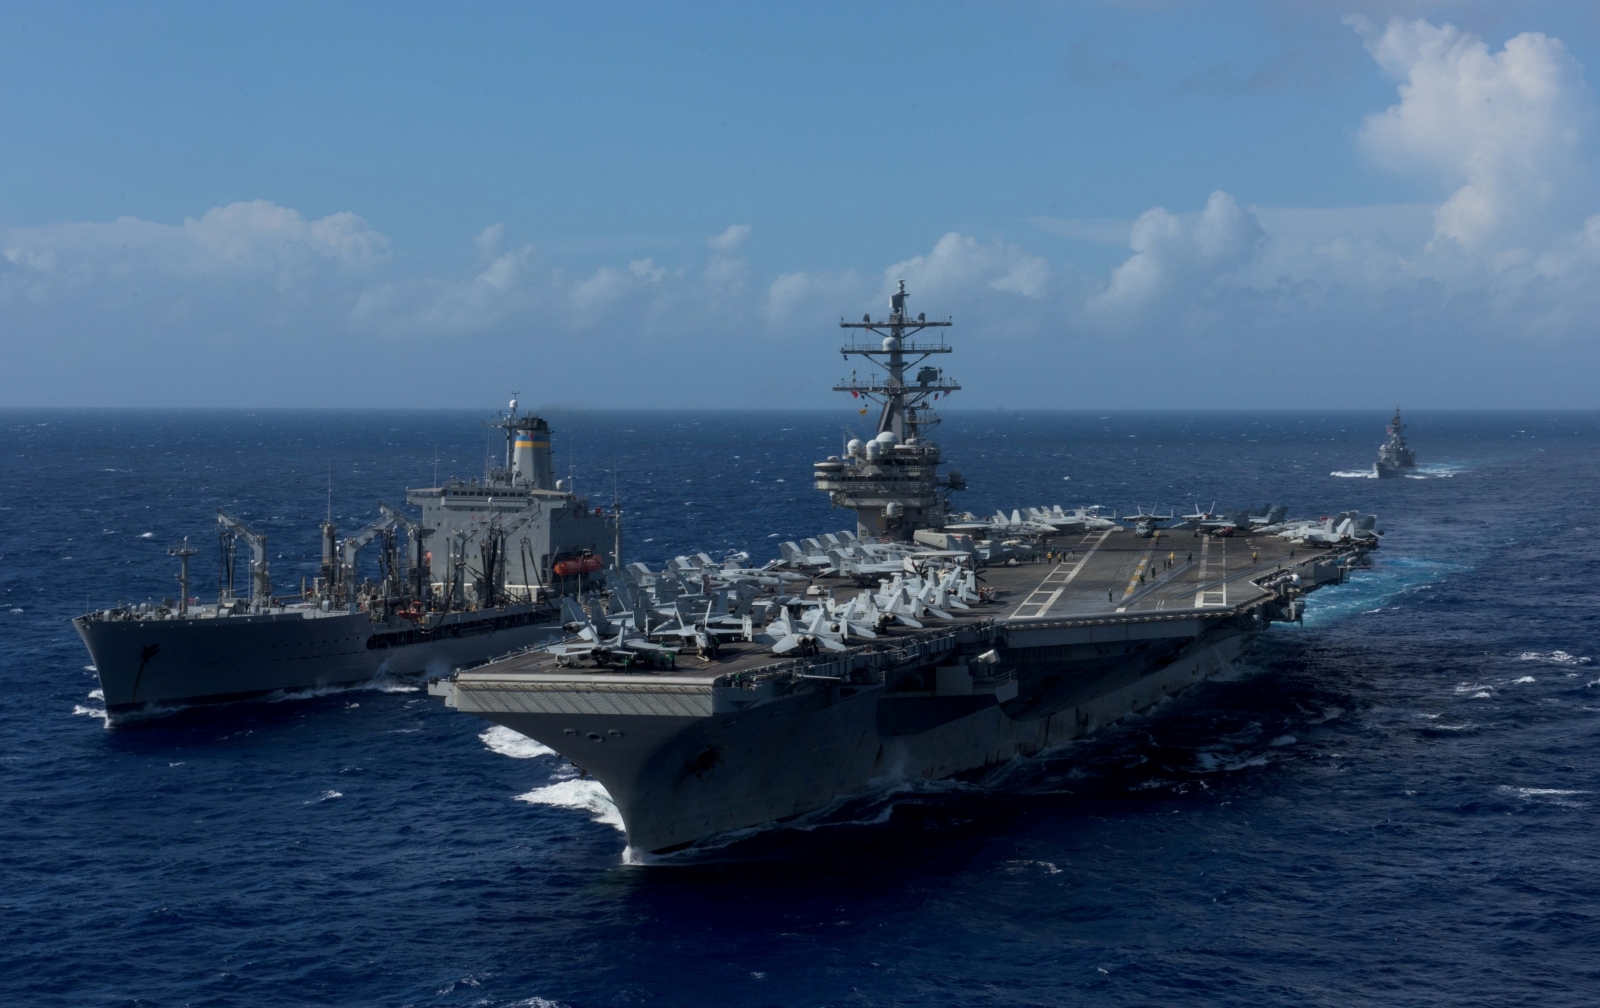 Show of force planned by 3 United States aircraft carrier groups